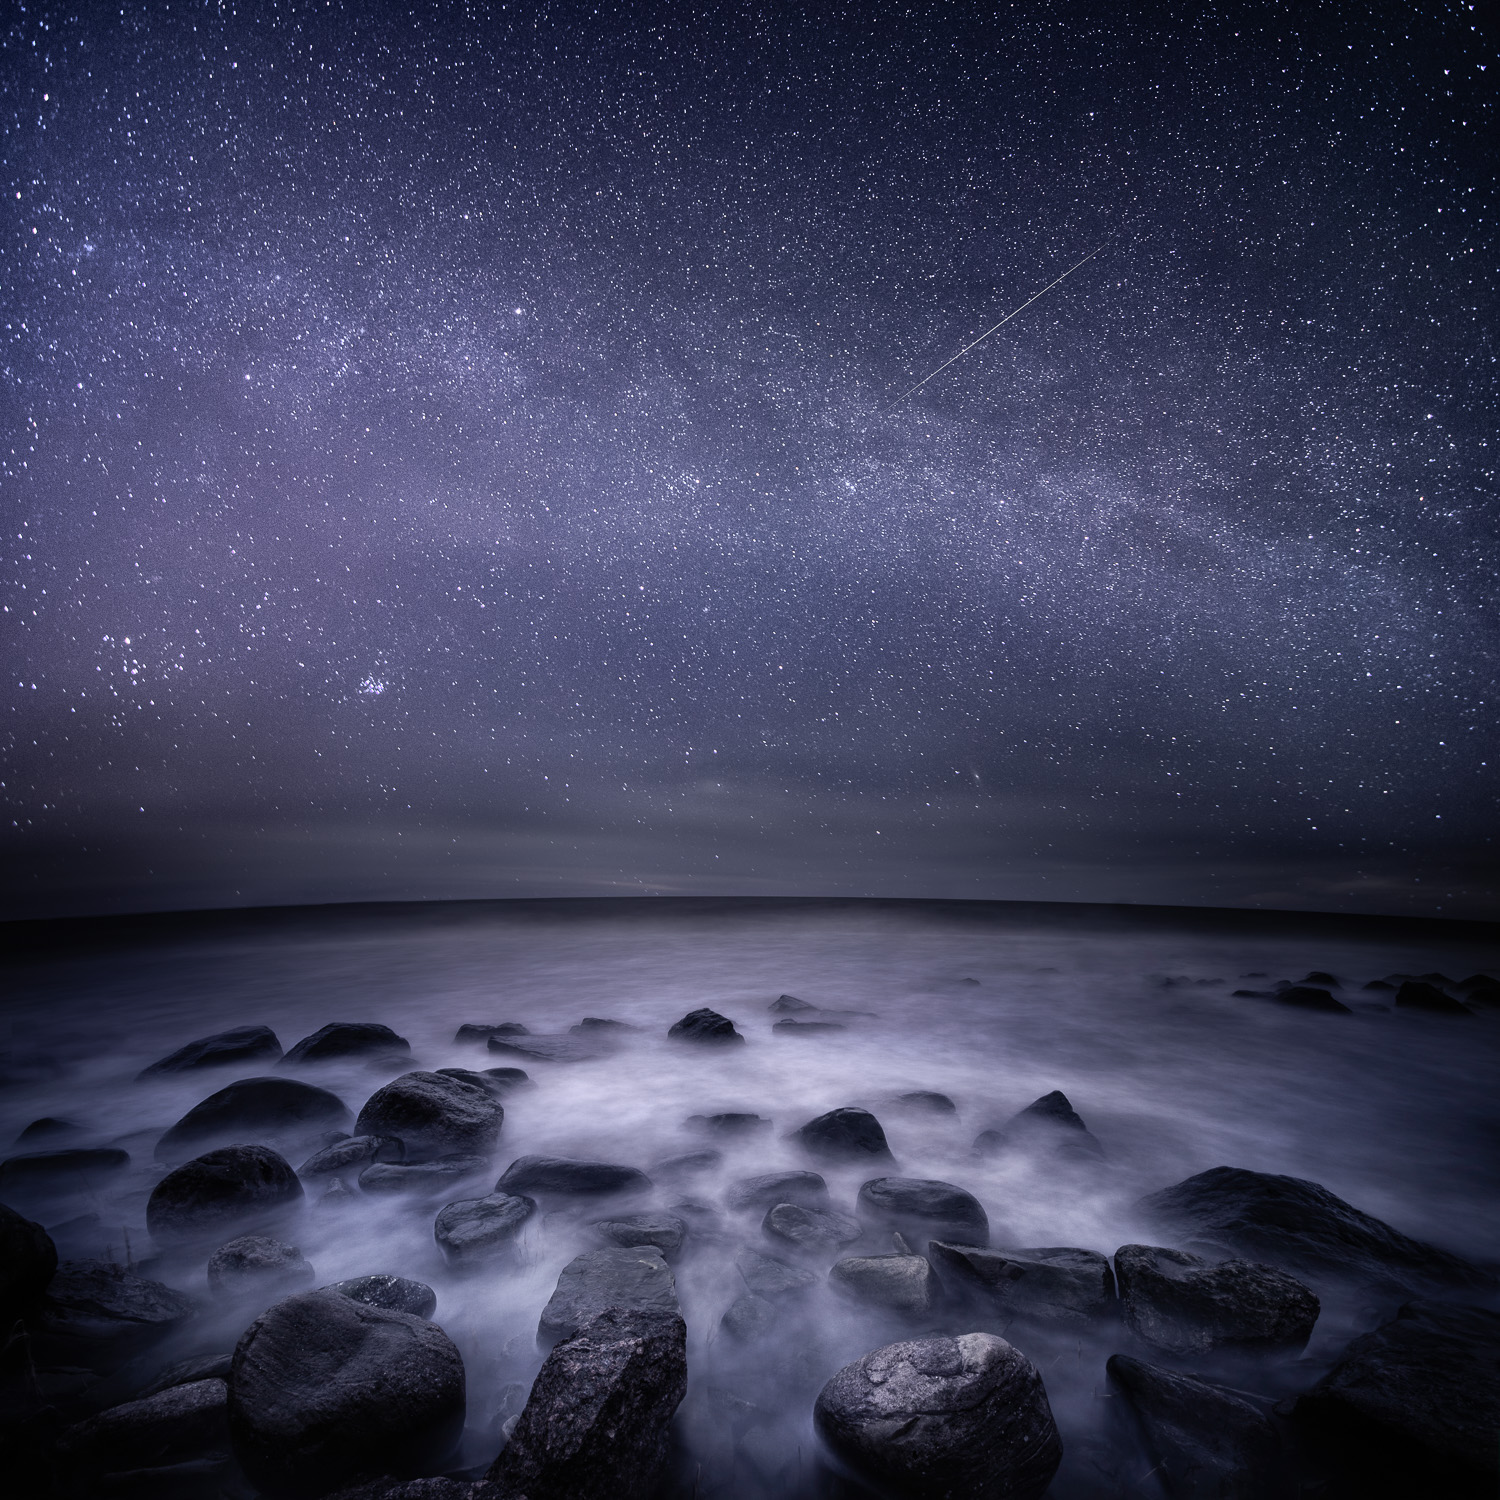 Mikko-Lagerstedt-Endless-Night.jpg